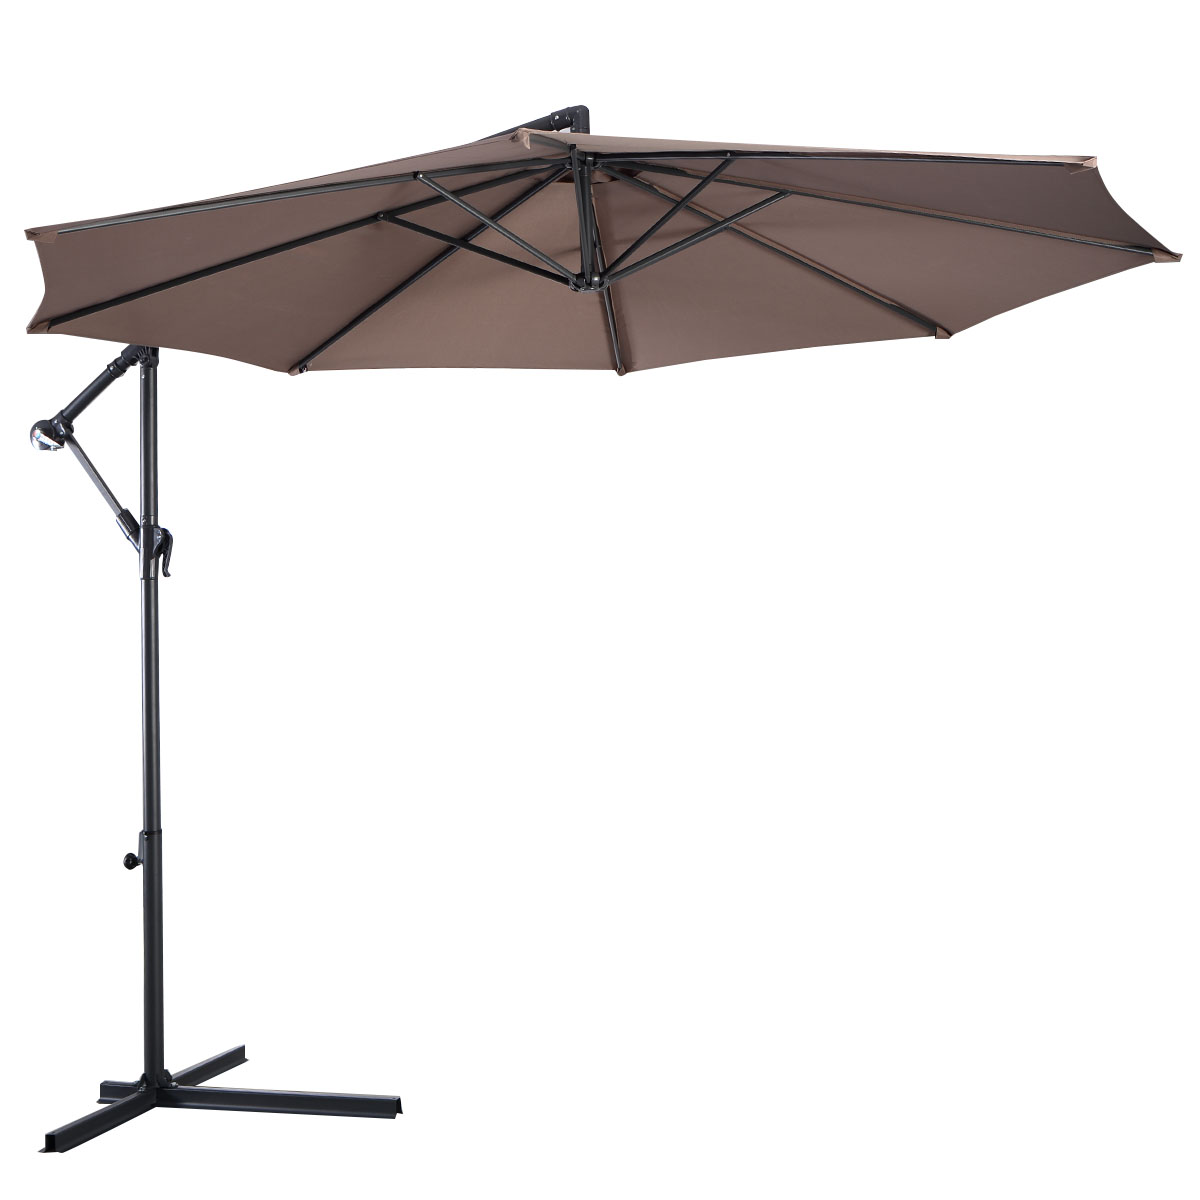 Costway 10' Hanging Umbrella Patio Sun Shade Offset Outdoor Market W t Cross Base (Tan) by Costway